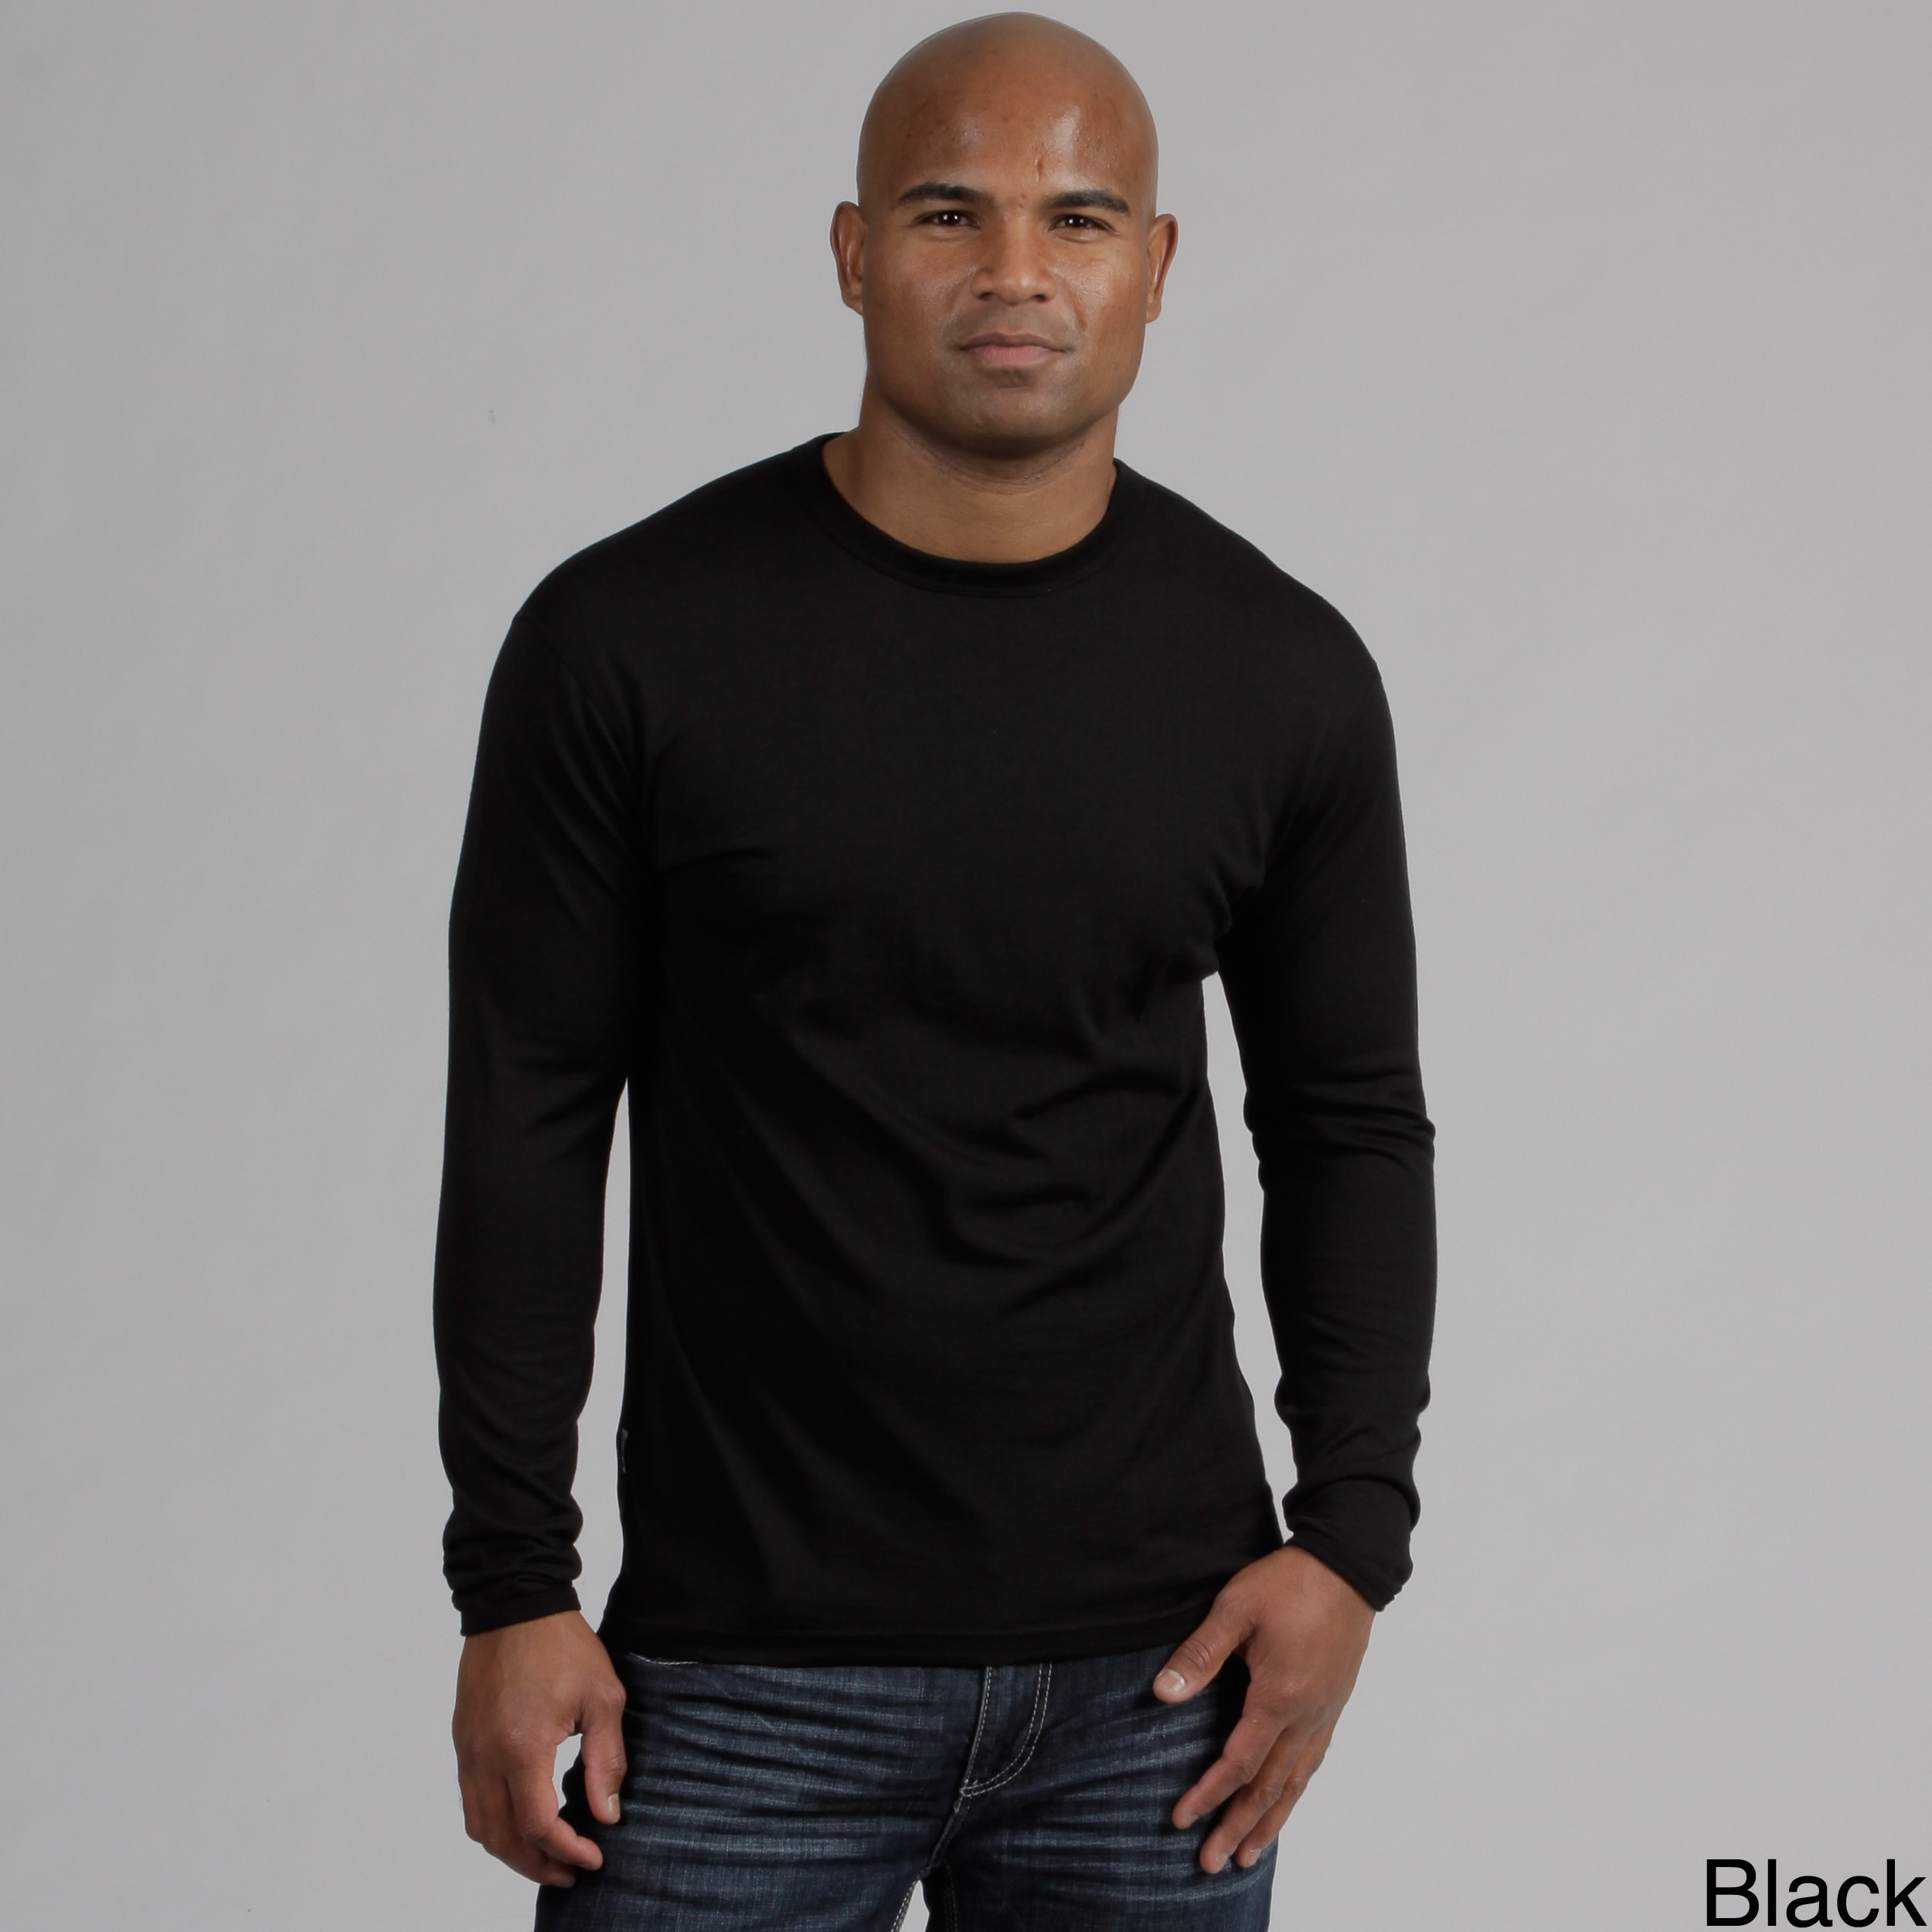 Minus33 Merino Wool Clothing  Men's 'Ticonderoga' Merino Wool Lightweight Crew Base Layer Top